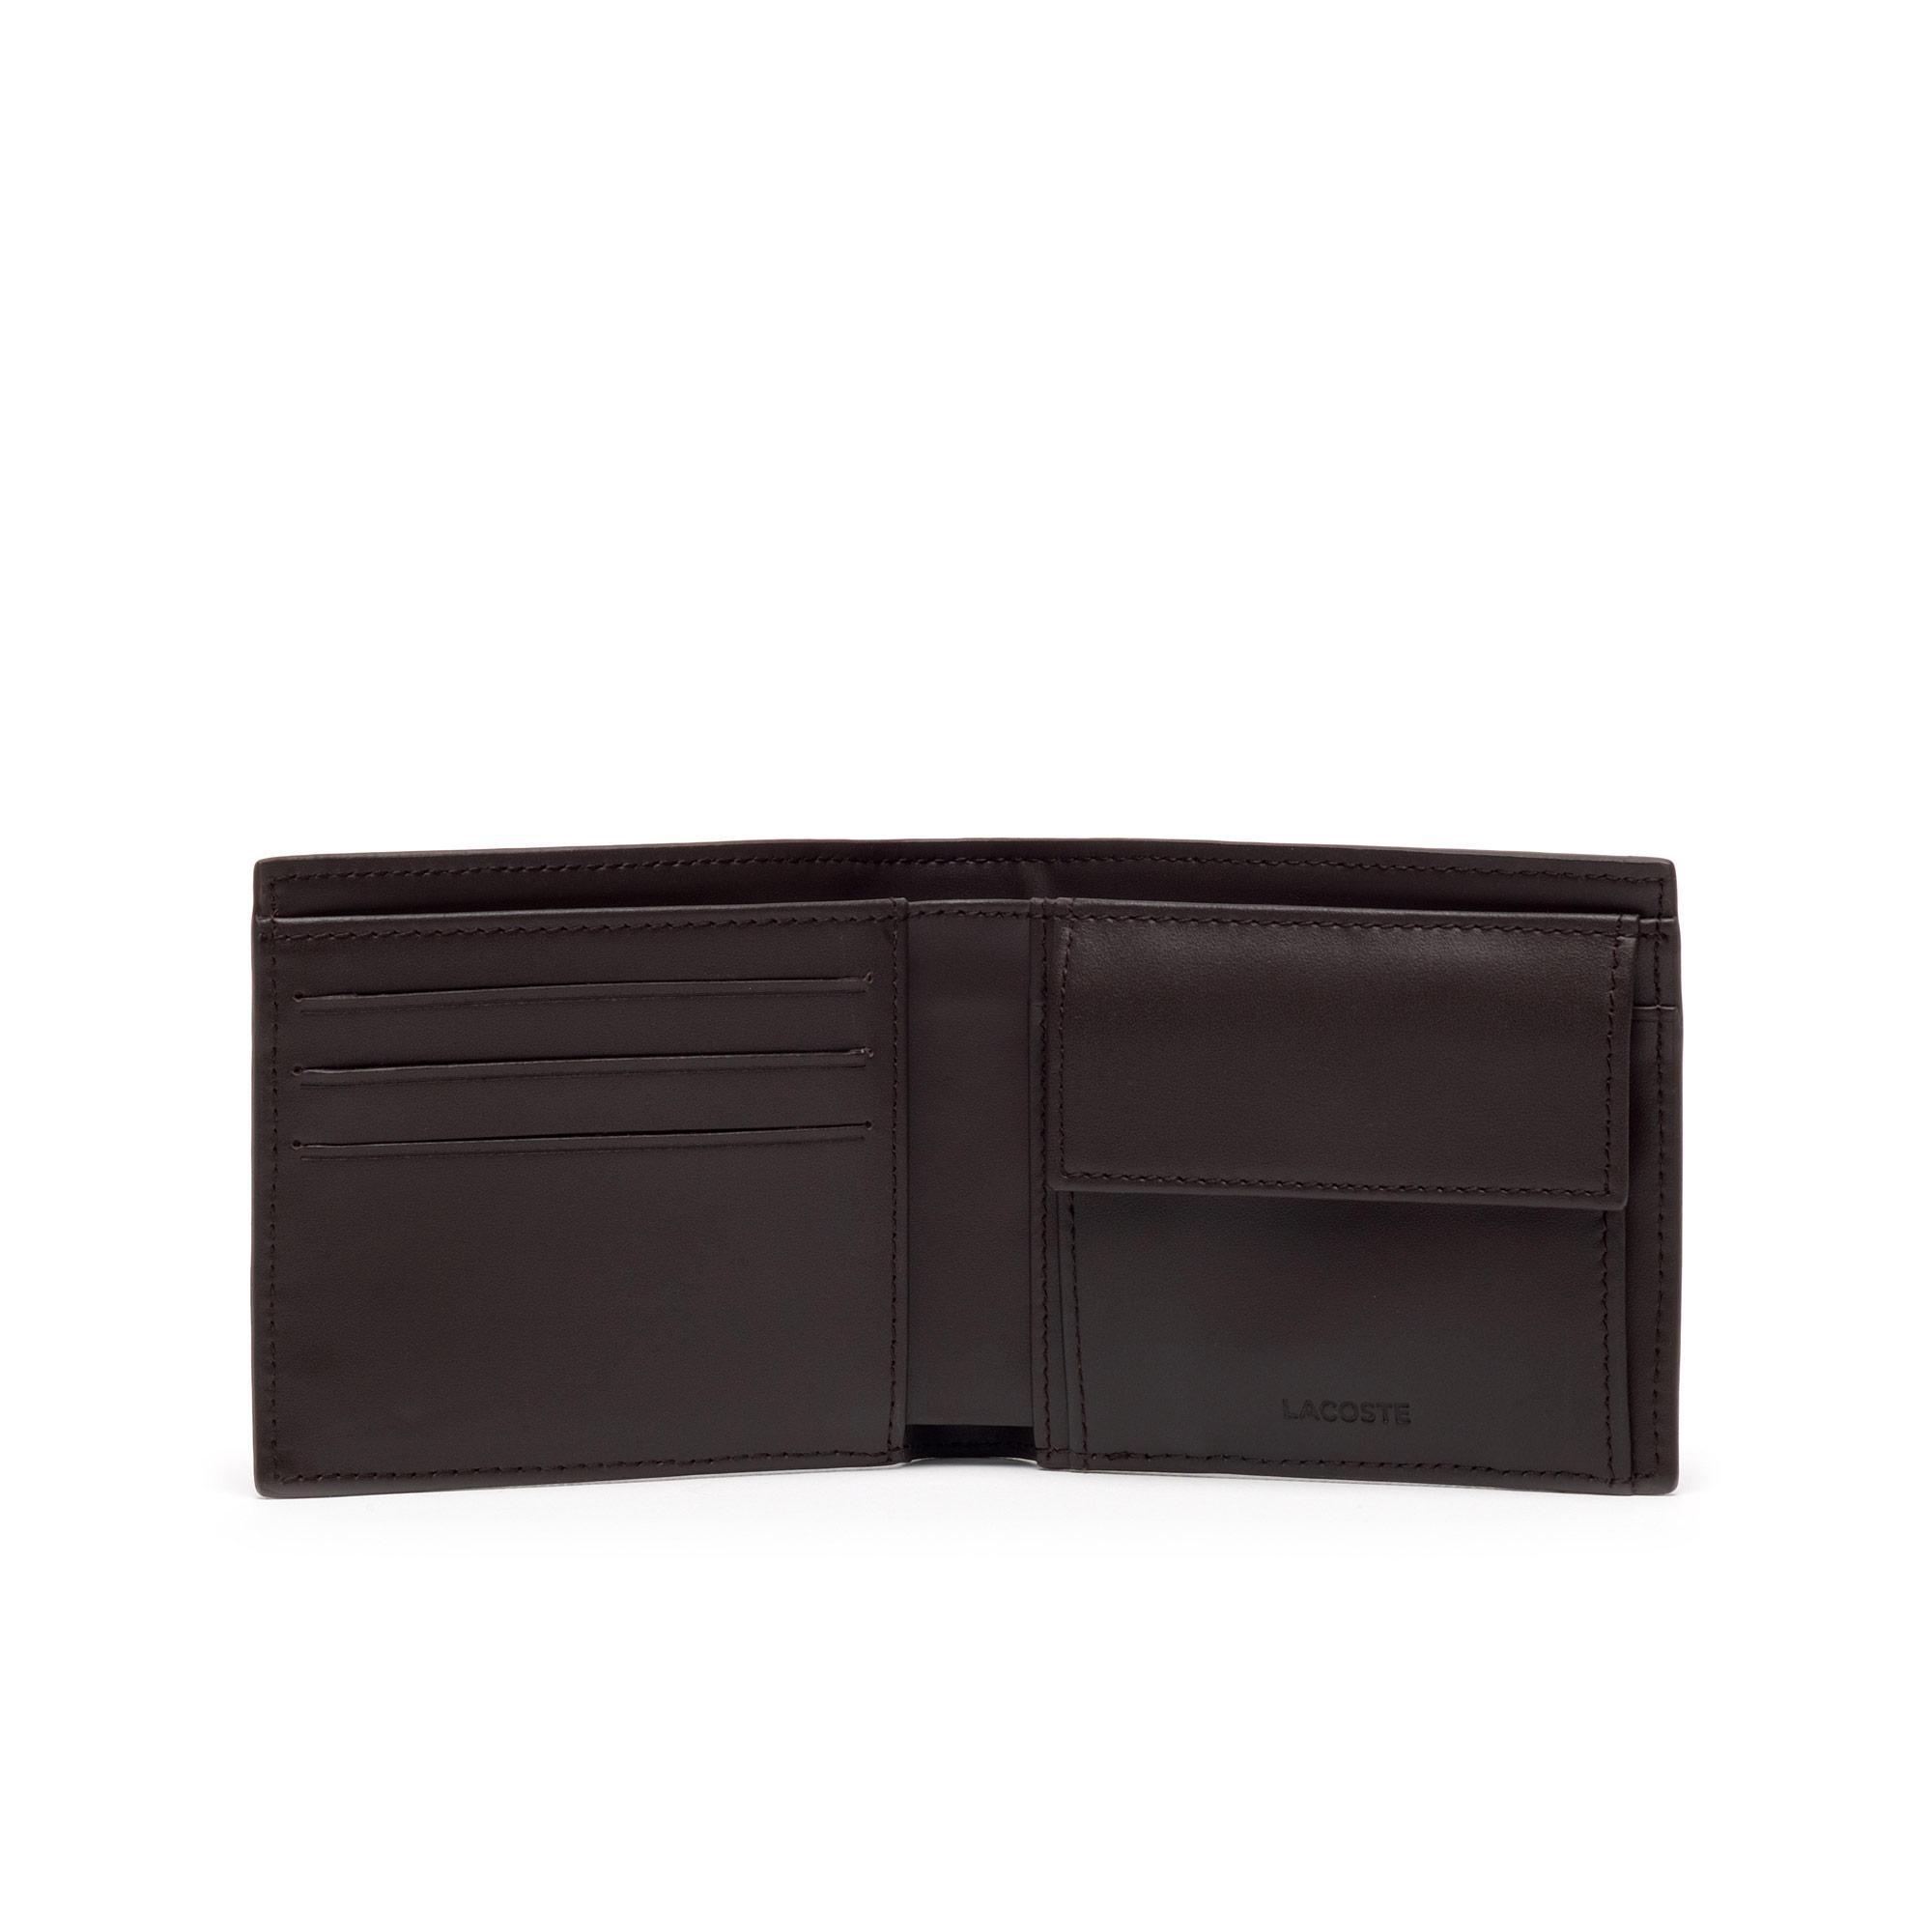 Lacoste Men's Fitzgerald Billfold in Leather